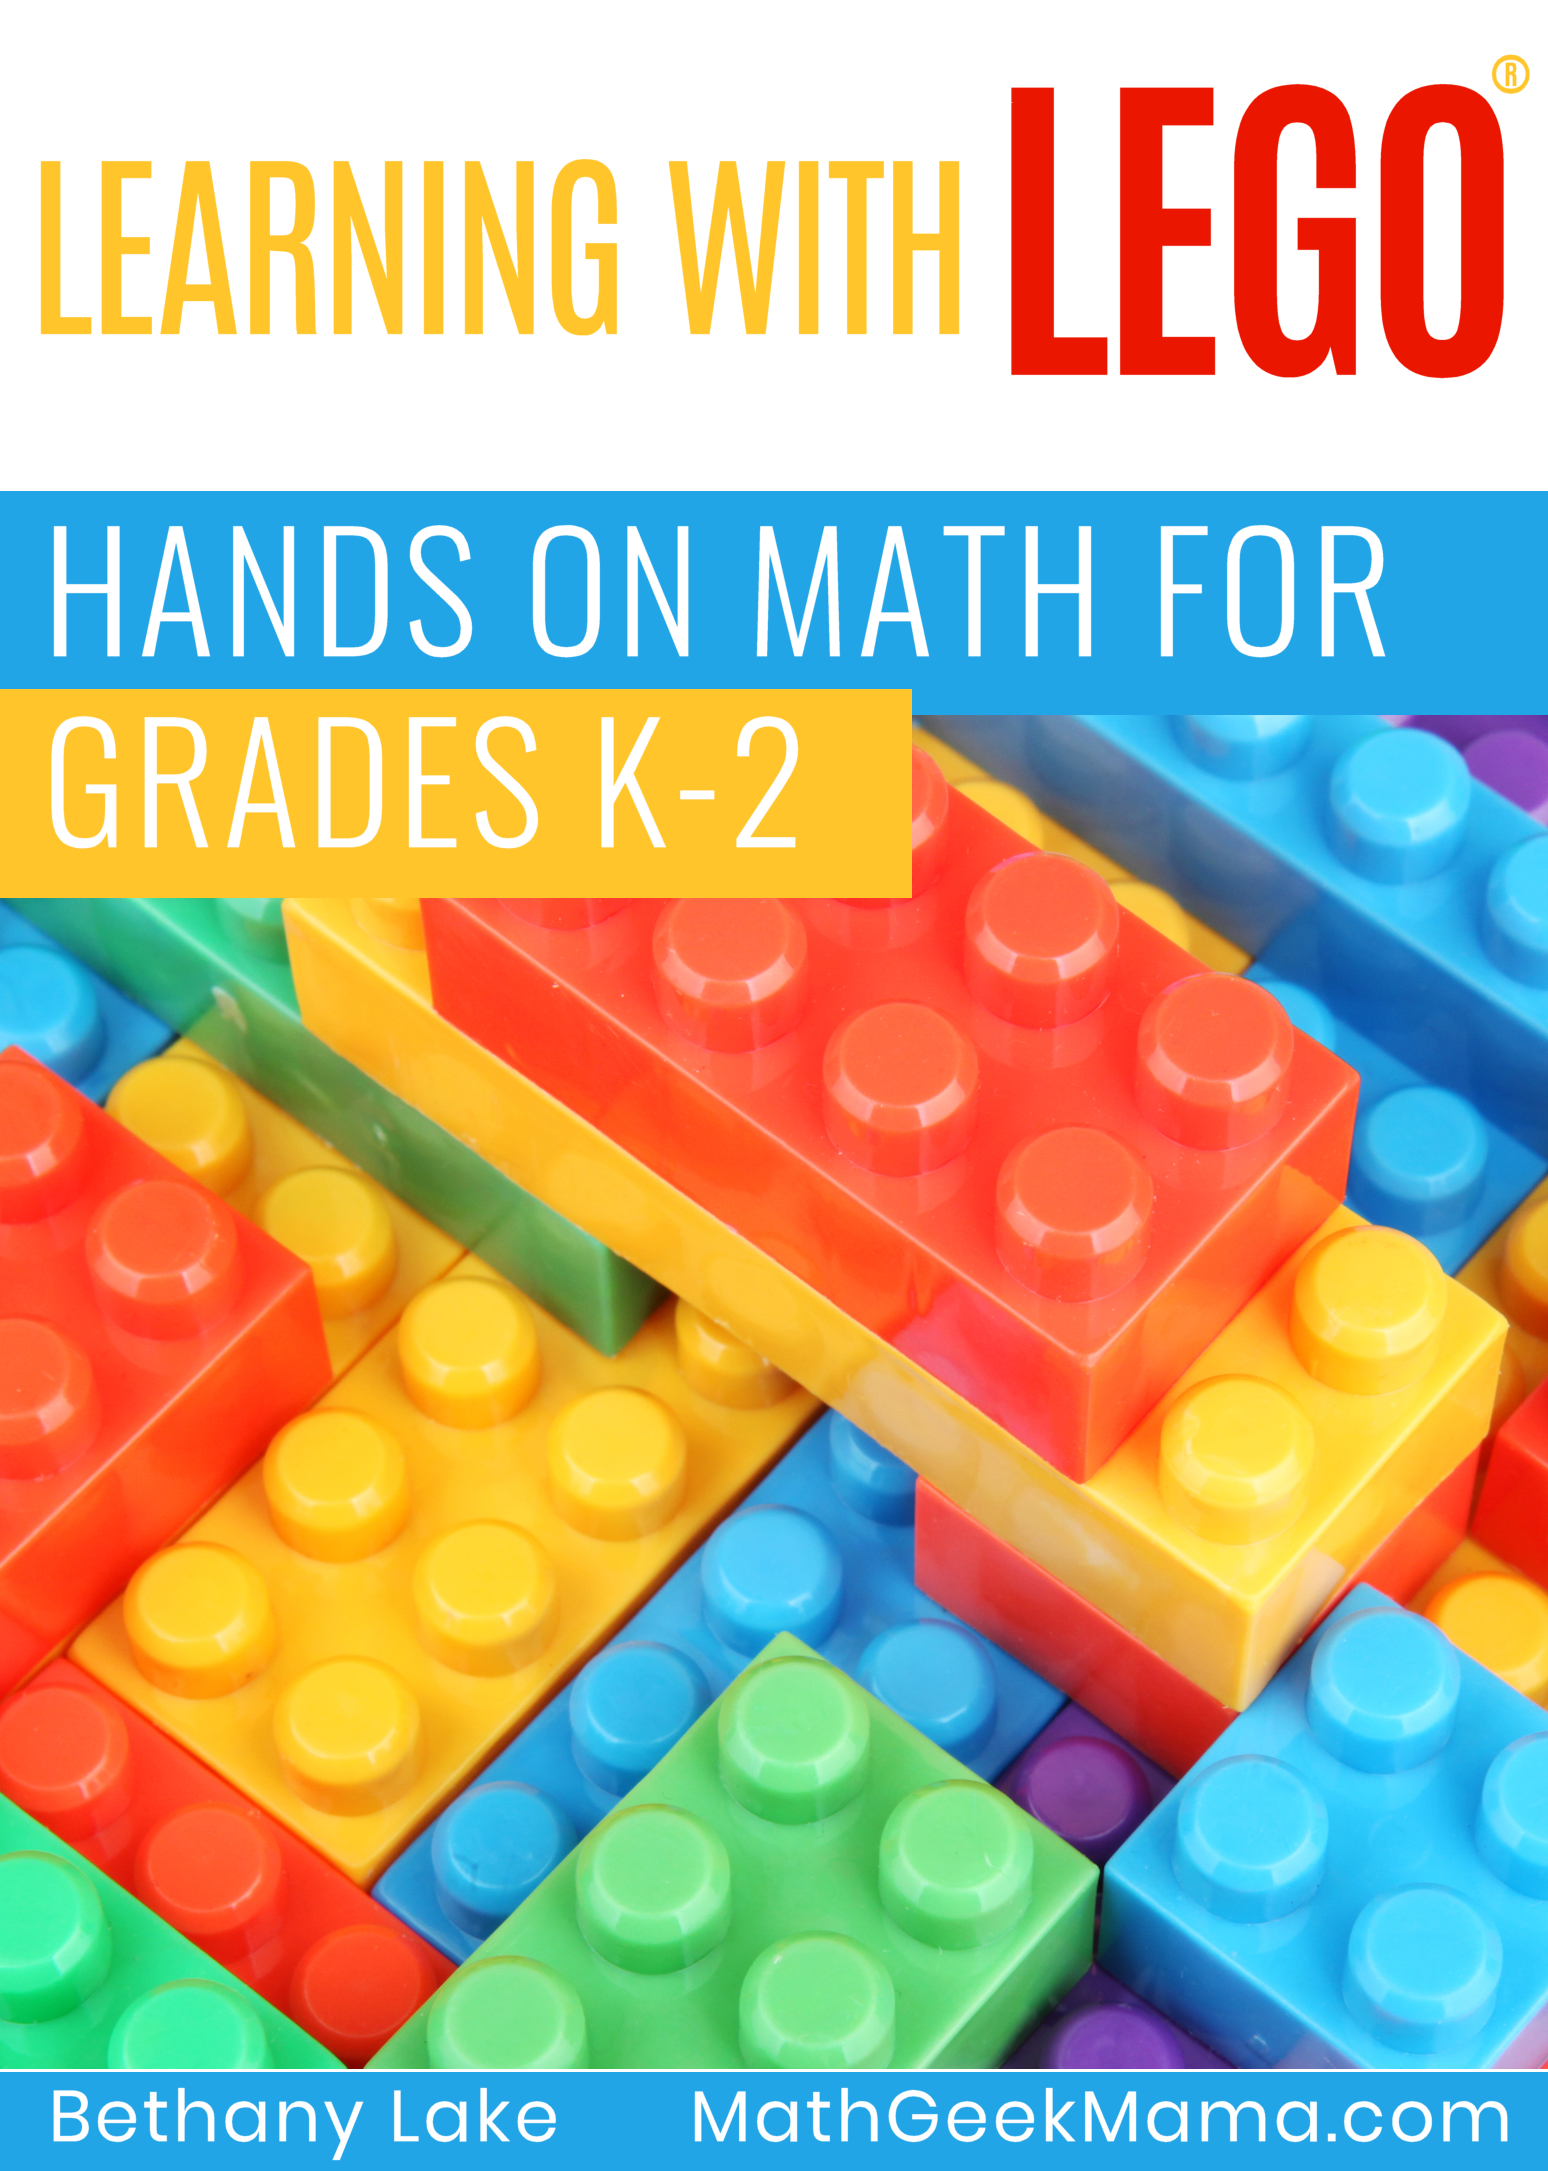 Learning With Lego Hands On Math For K 2 In